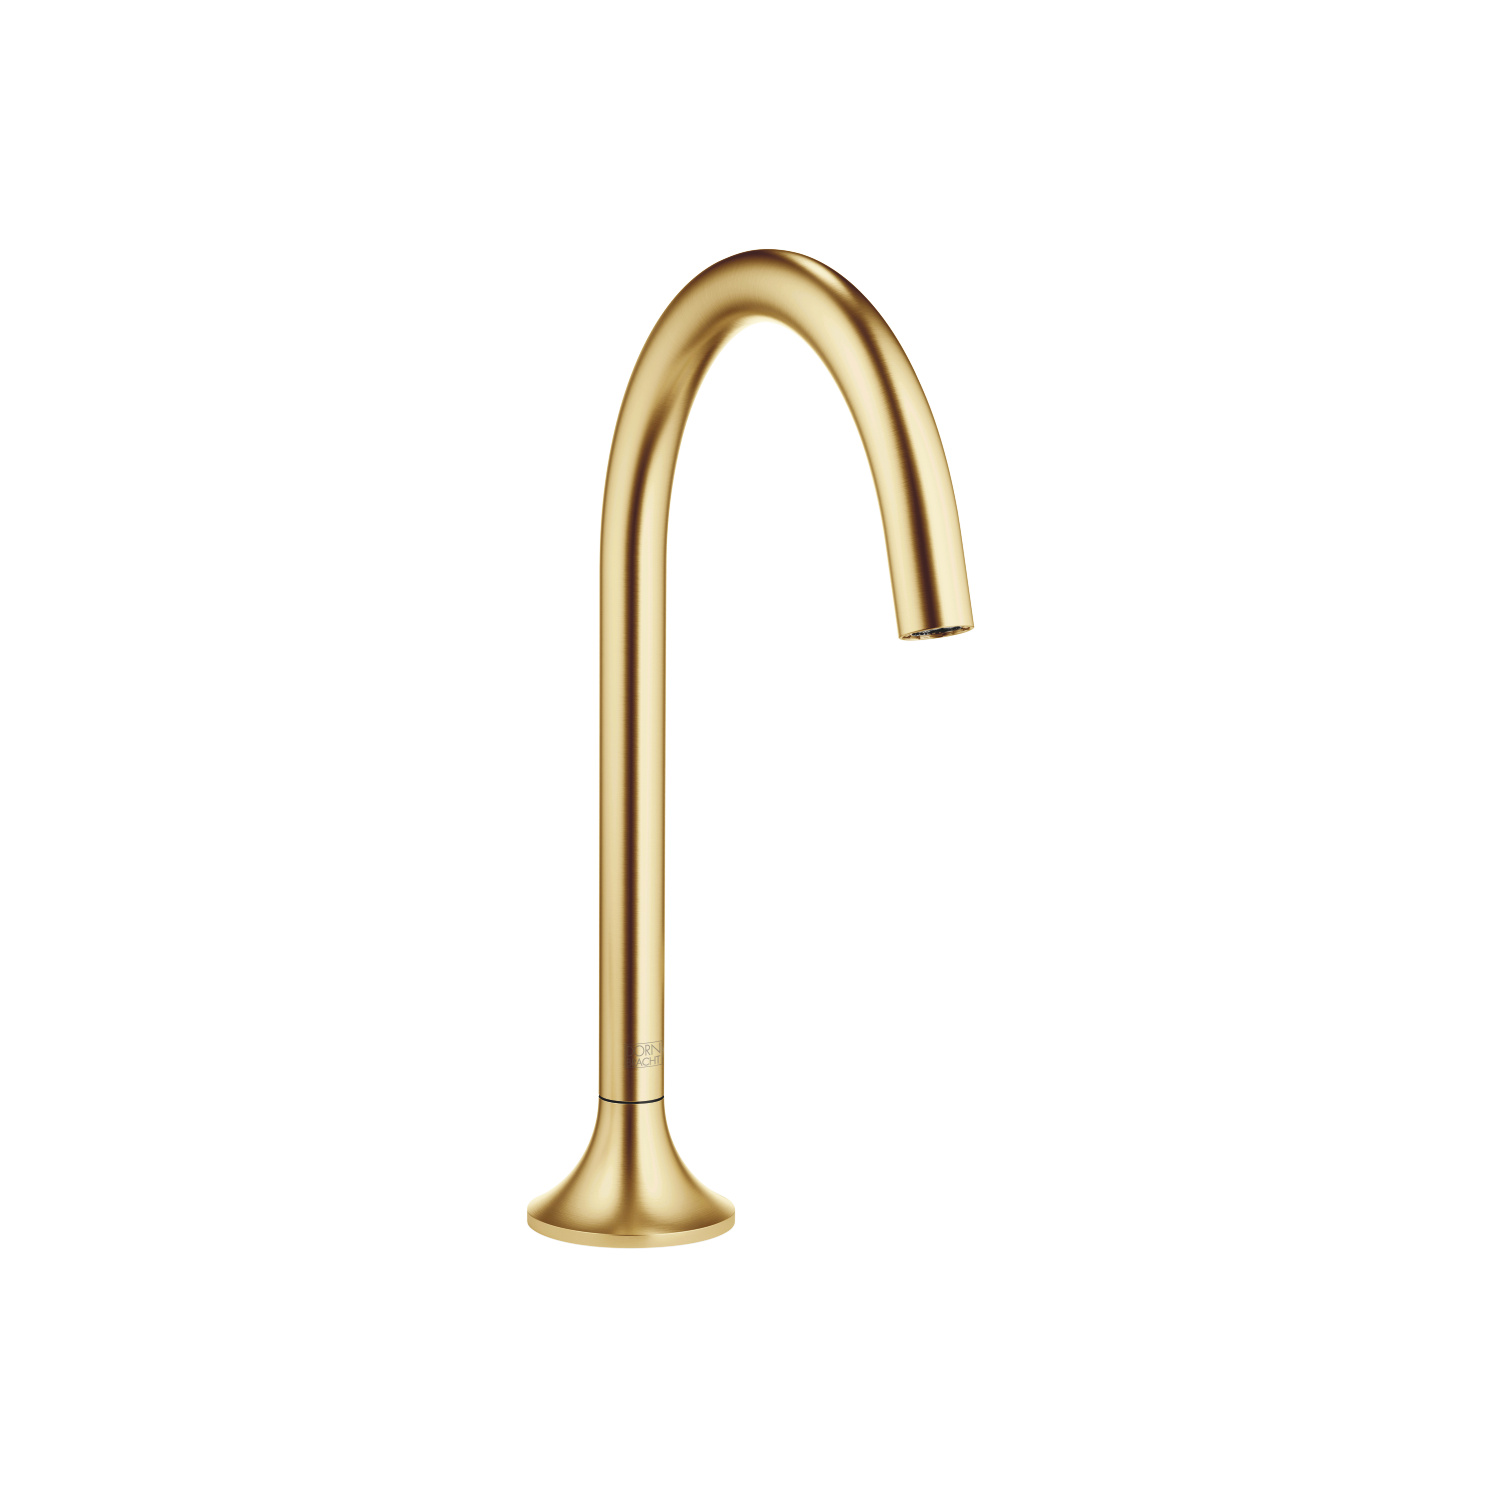 eSET Touchfree Basin mixer without pop-up waste without temperature setting - brushed Durabrass